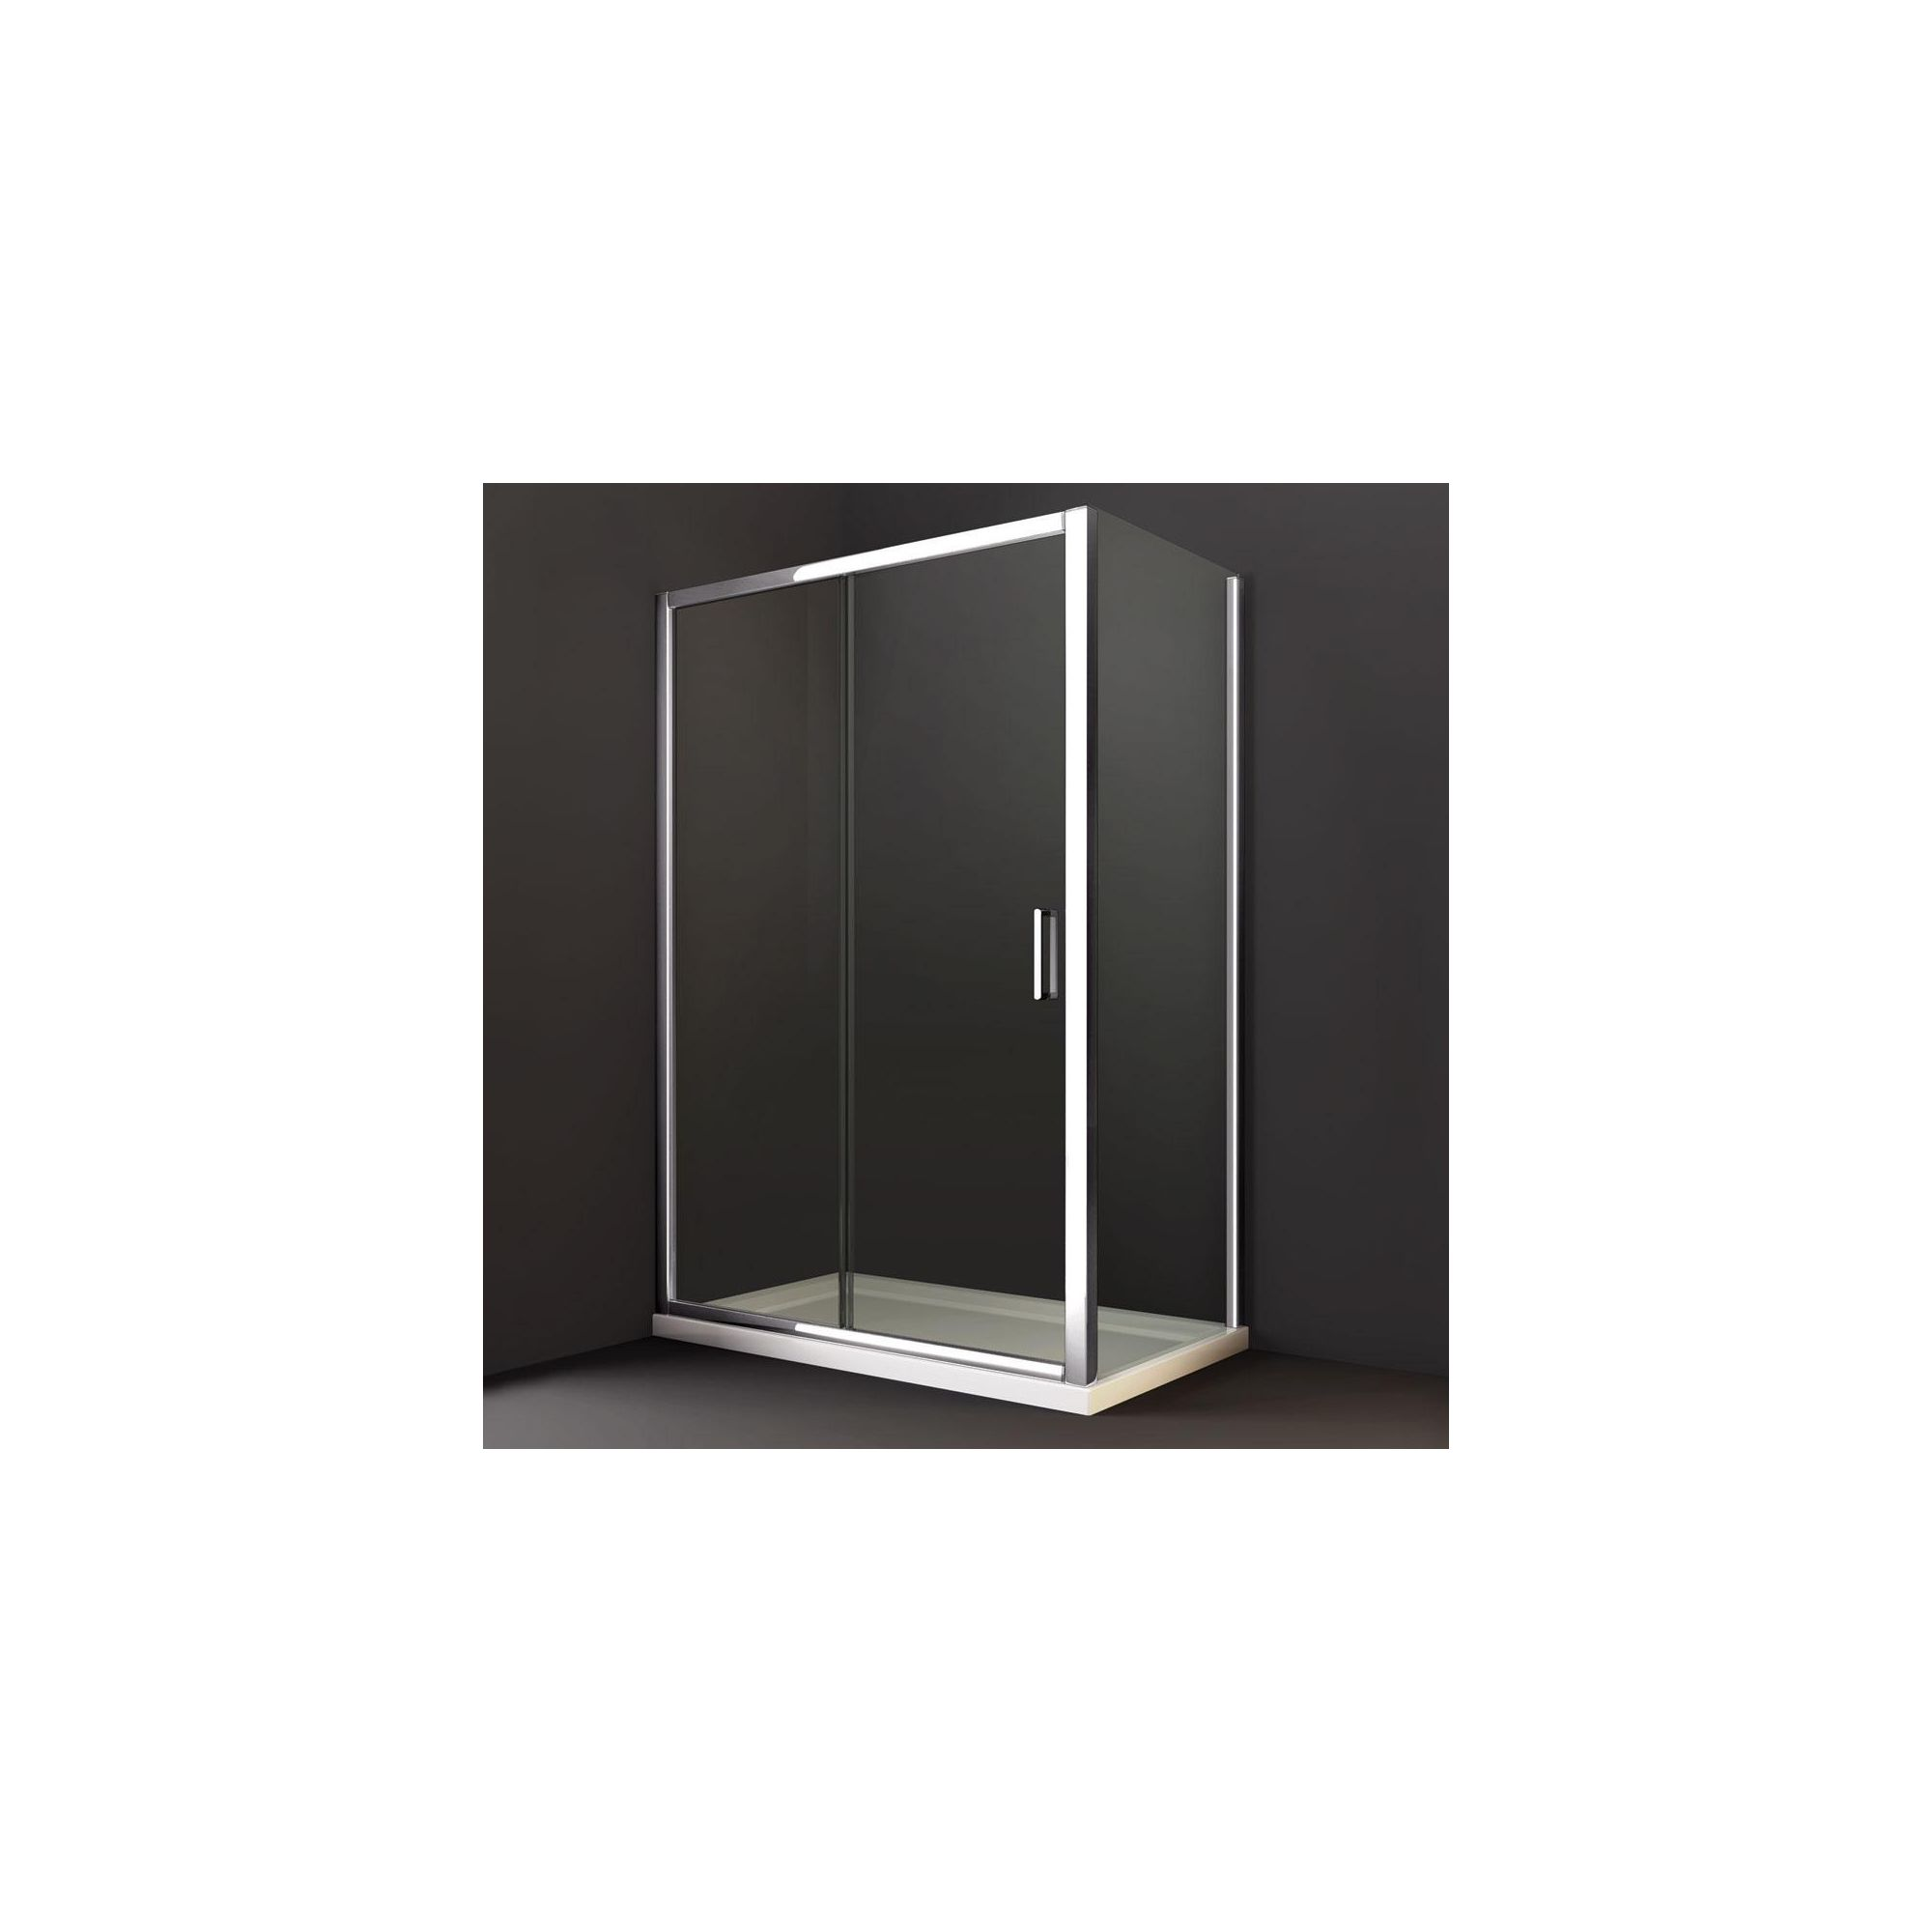 Merlyn Series 8 Sliding Shower Door, 1200mm Wide, Chrome Frame, 8mm Glass at Tesco Direct